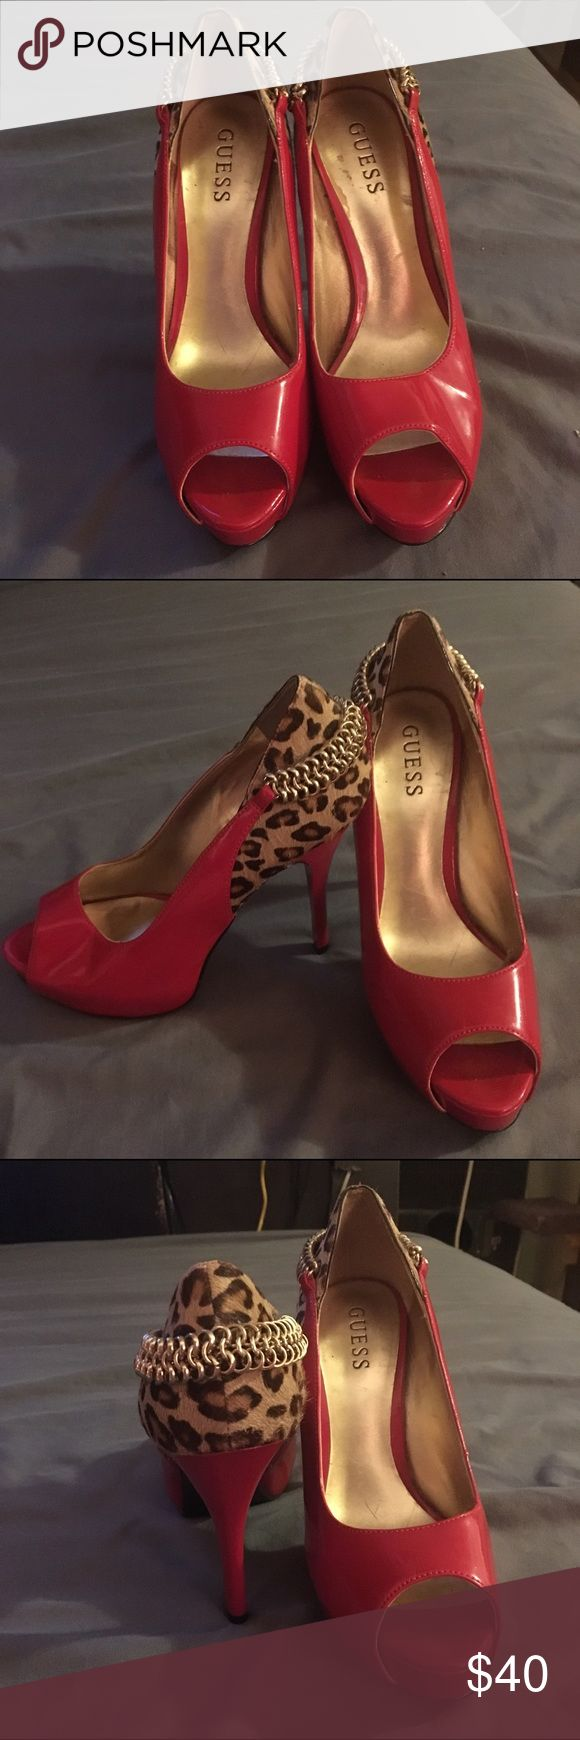 Size 7 Guess Heels BARELY WORN These red Guess shoes with cheetah print accenting and chain have barely been worn and are in great shape! Very comfortable! Just not a heels girl. Guess Shoes Heels